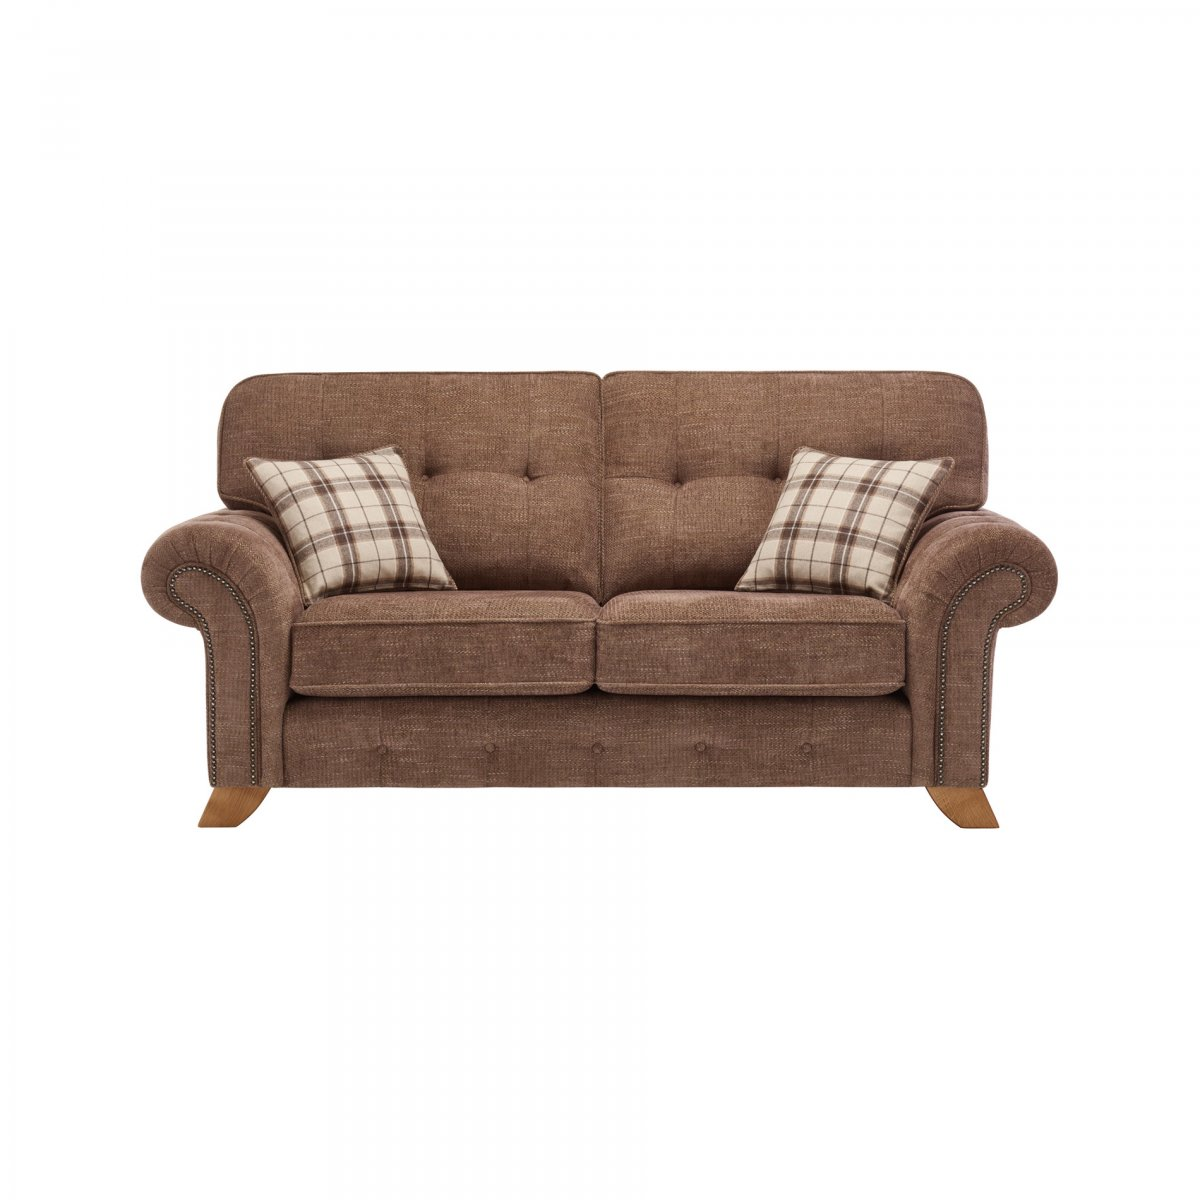 Montana 2 Seater High Back Sofa In Brown Tartan Cushions